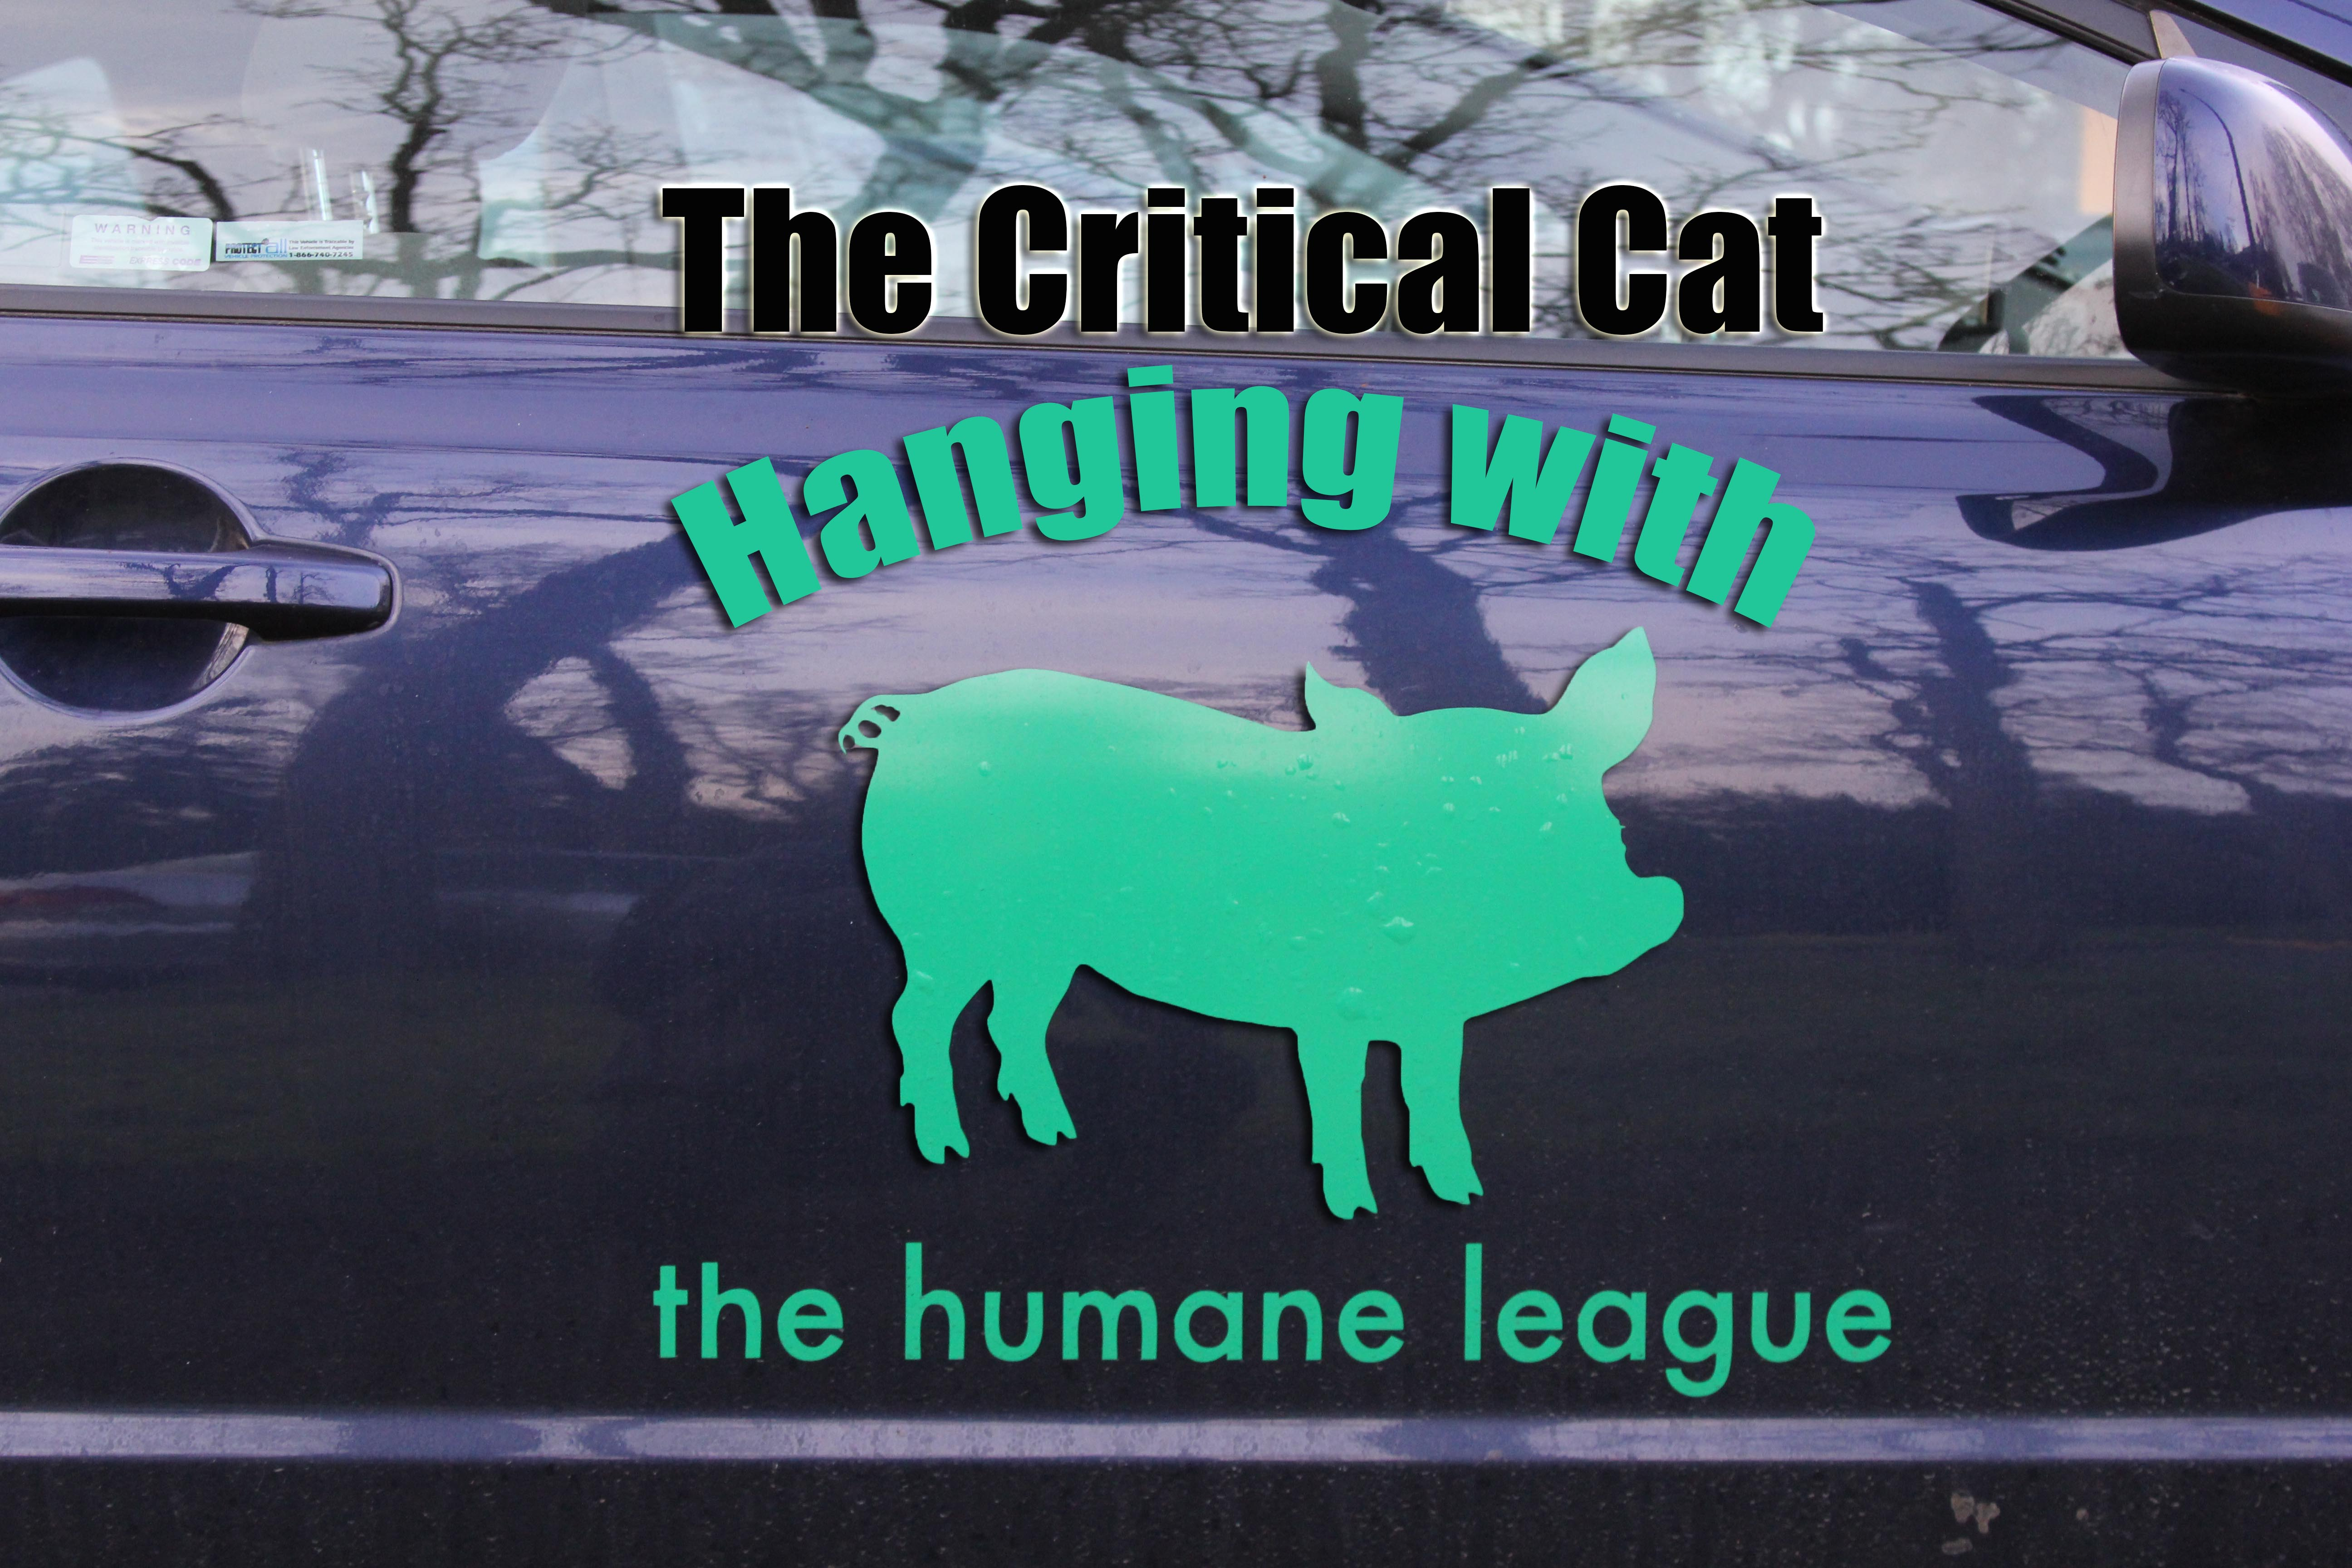 Hanging with The Humane League